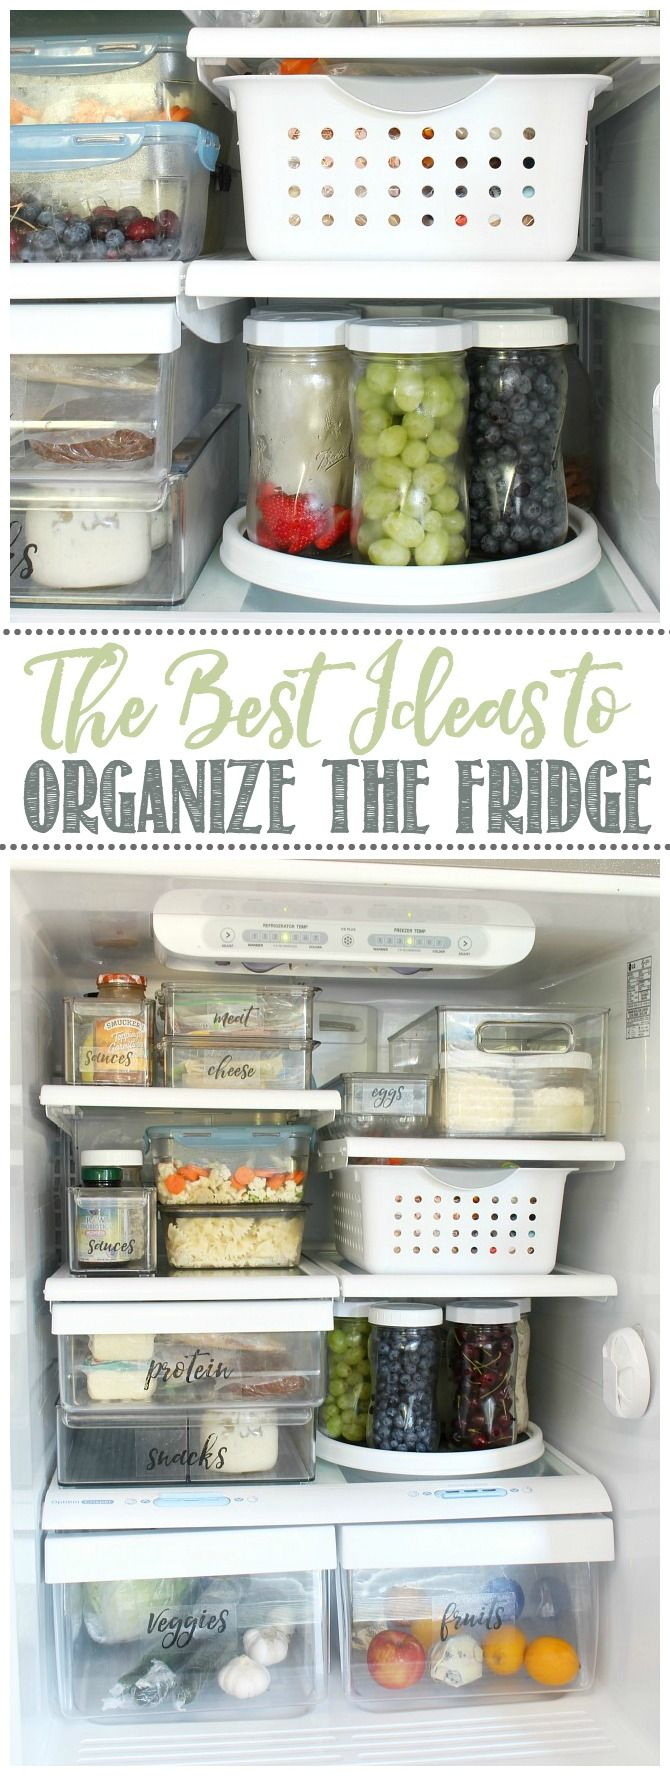 Fridge Organization Using Bins and Mason Jars - Clean and Scentsible